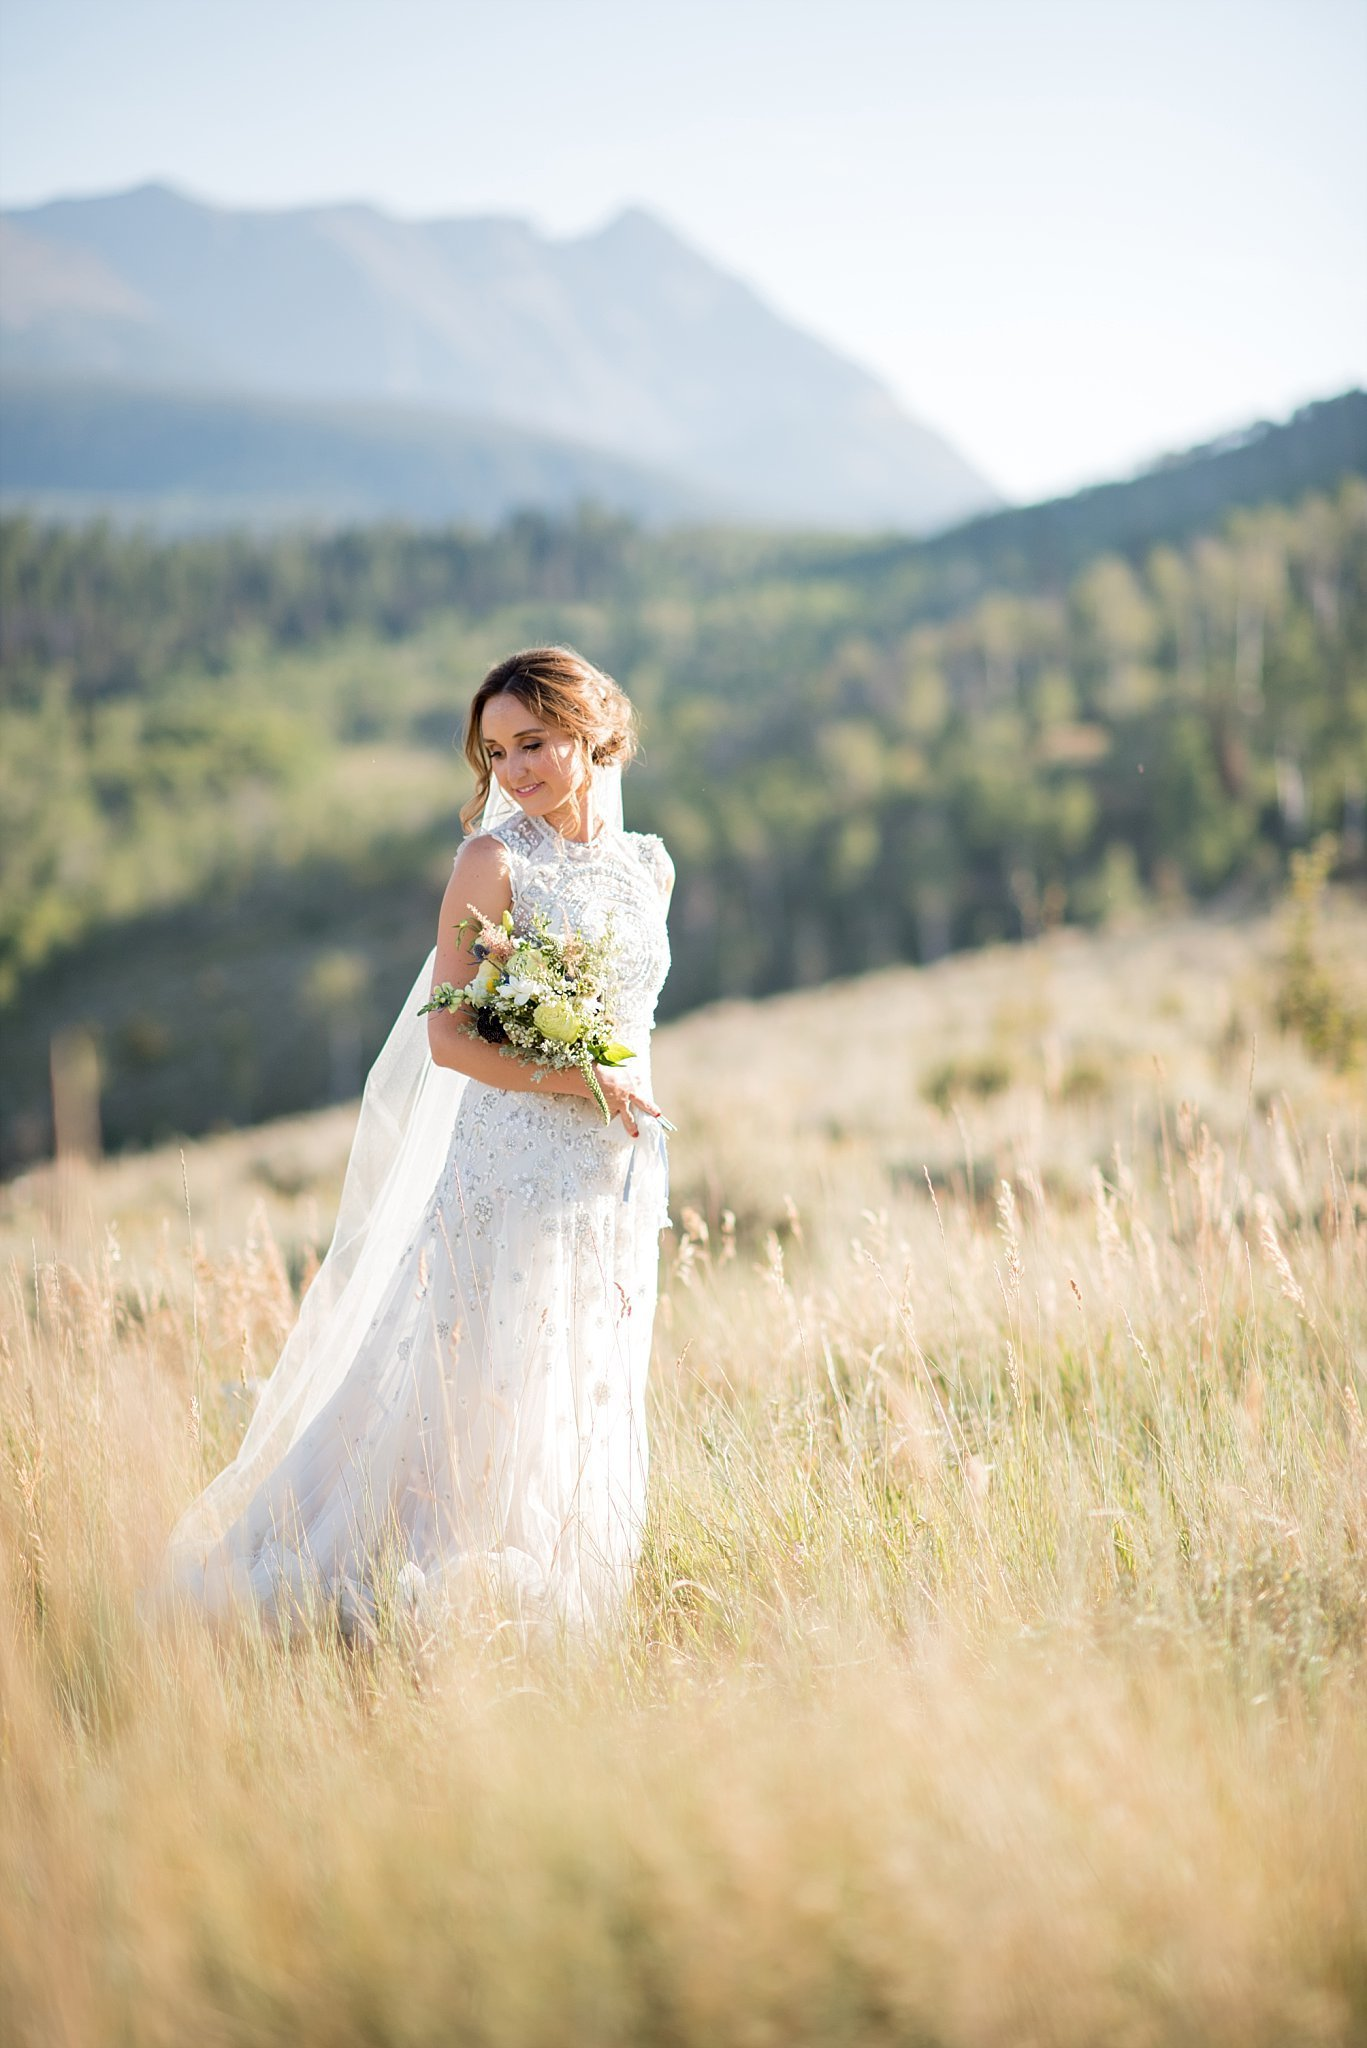 Elizabeth Ann Photography, Denver Wedding Photographer, Fine Art Wedding_2061